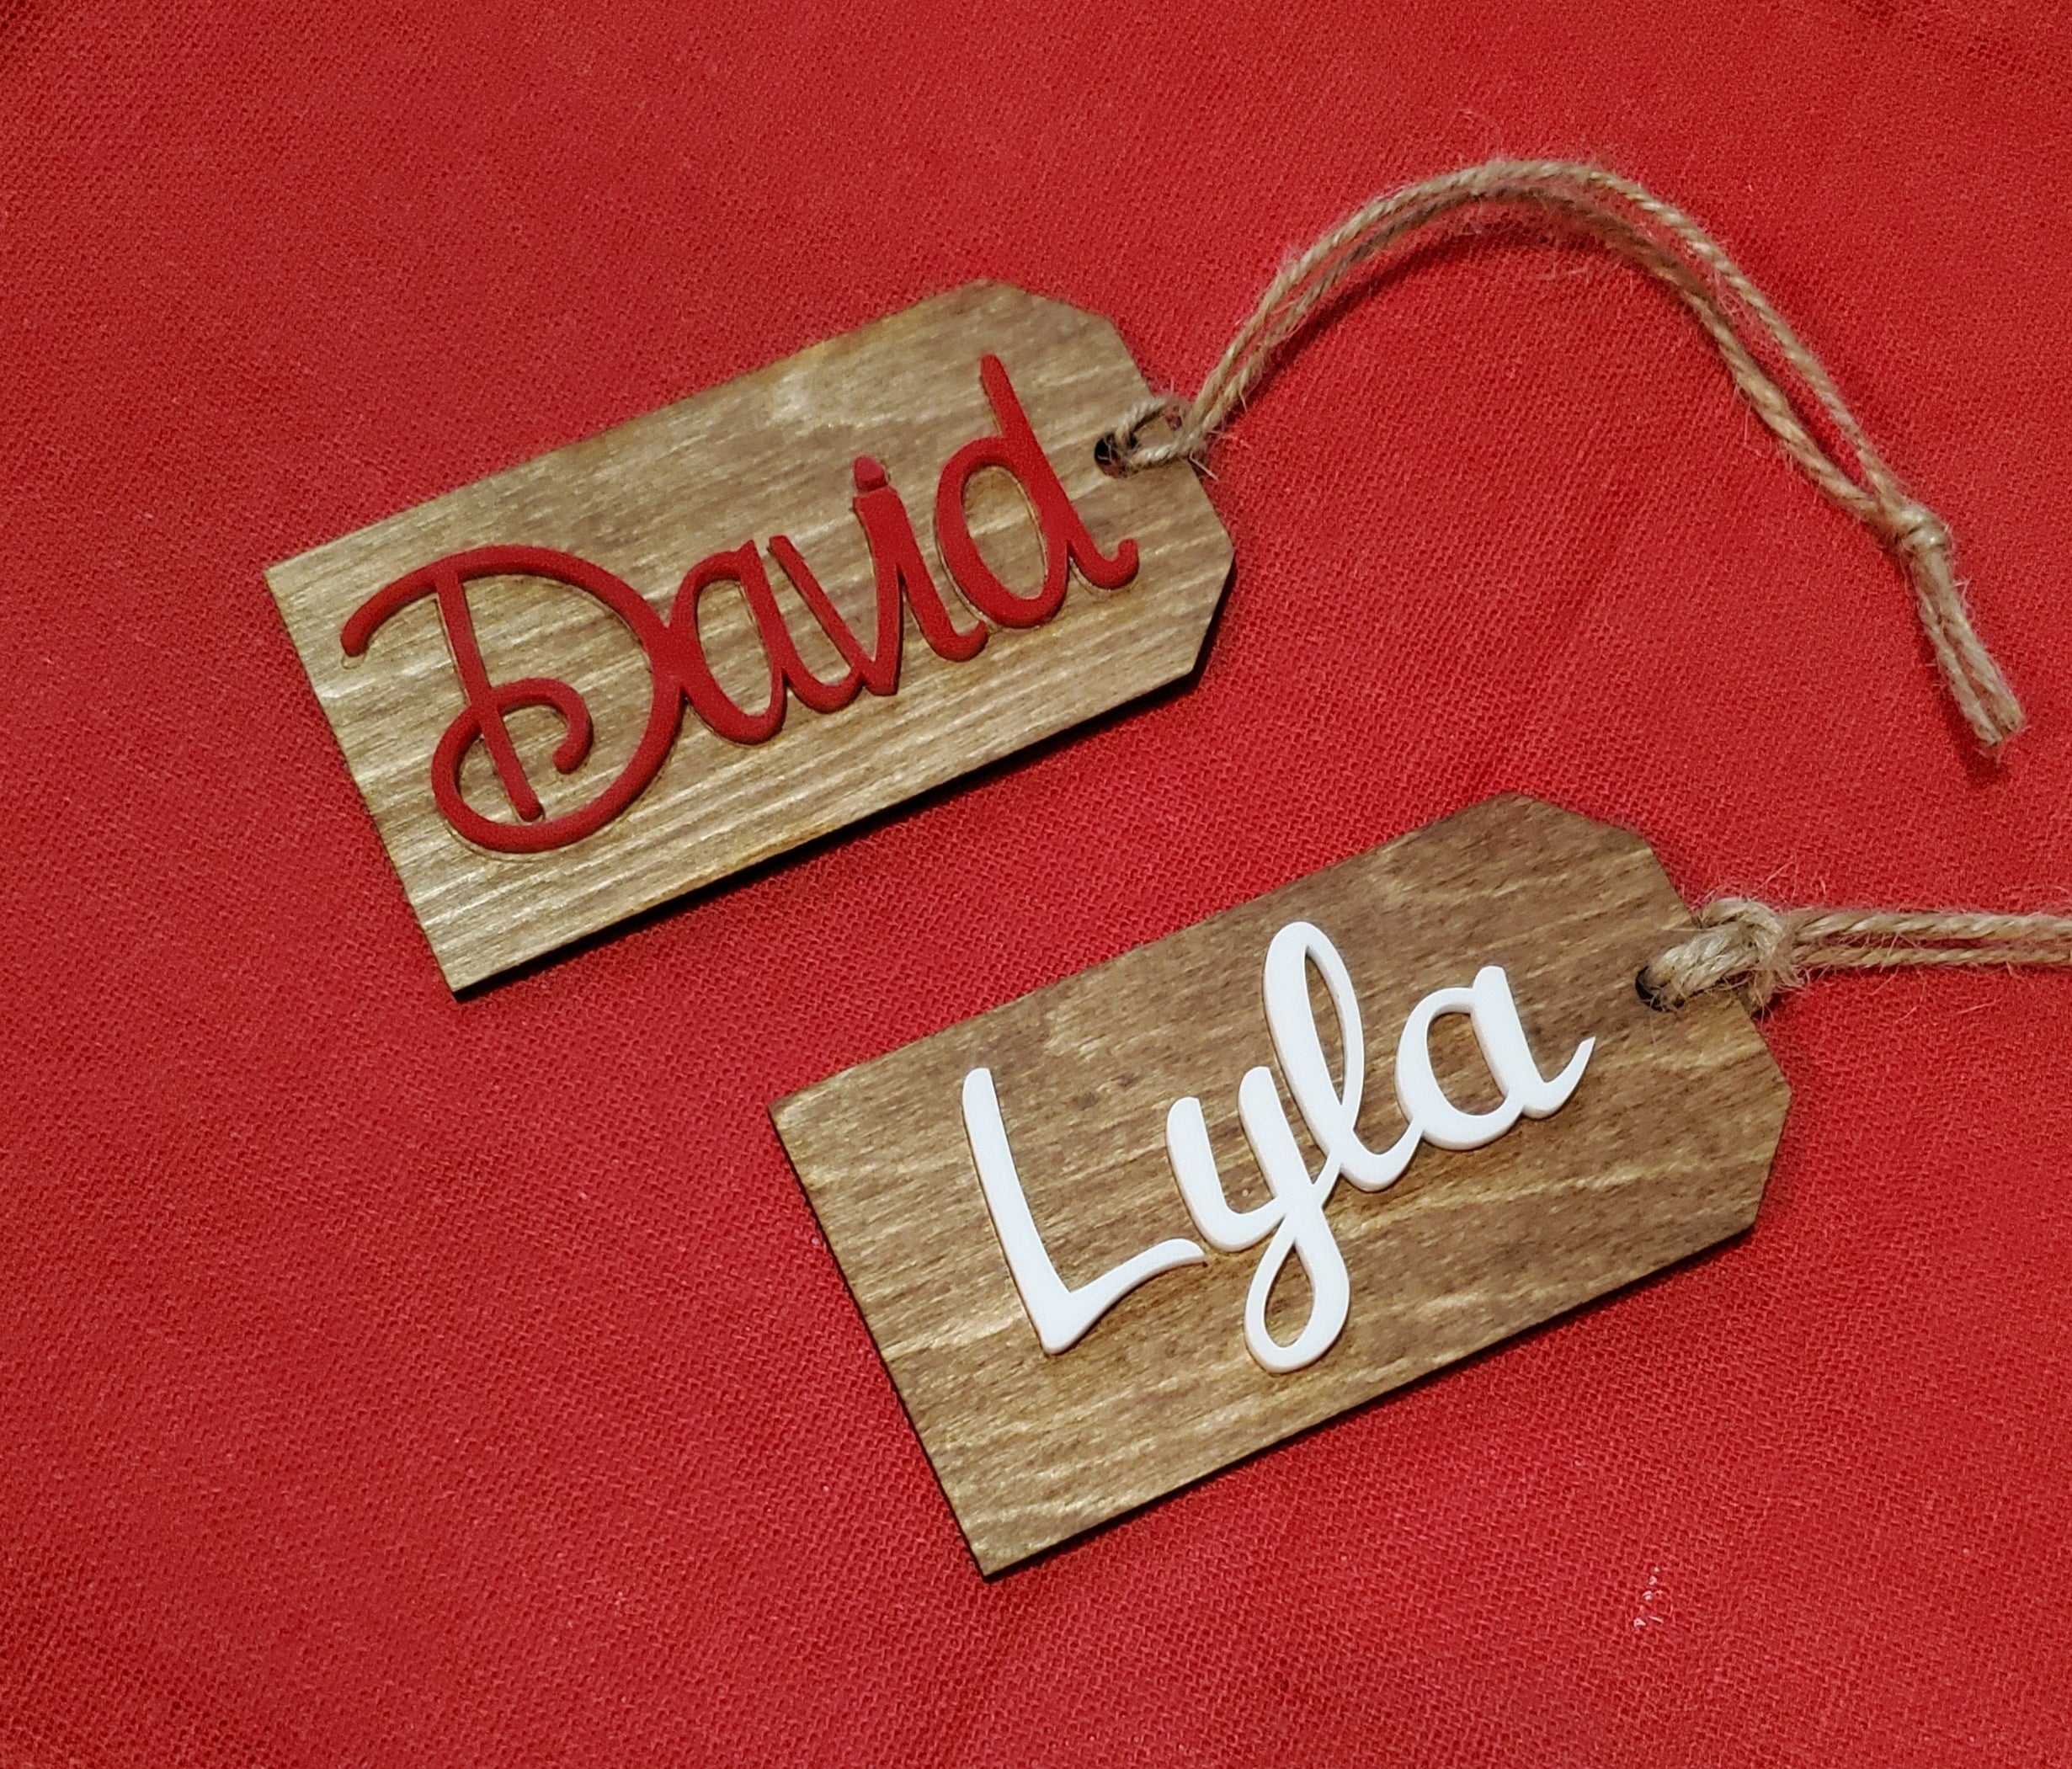 Personalized Name Tag